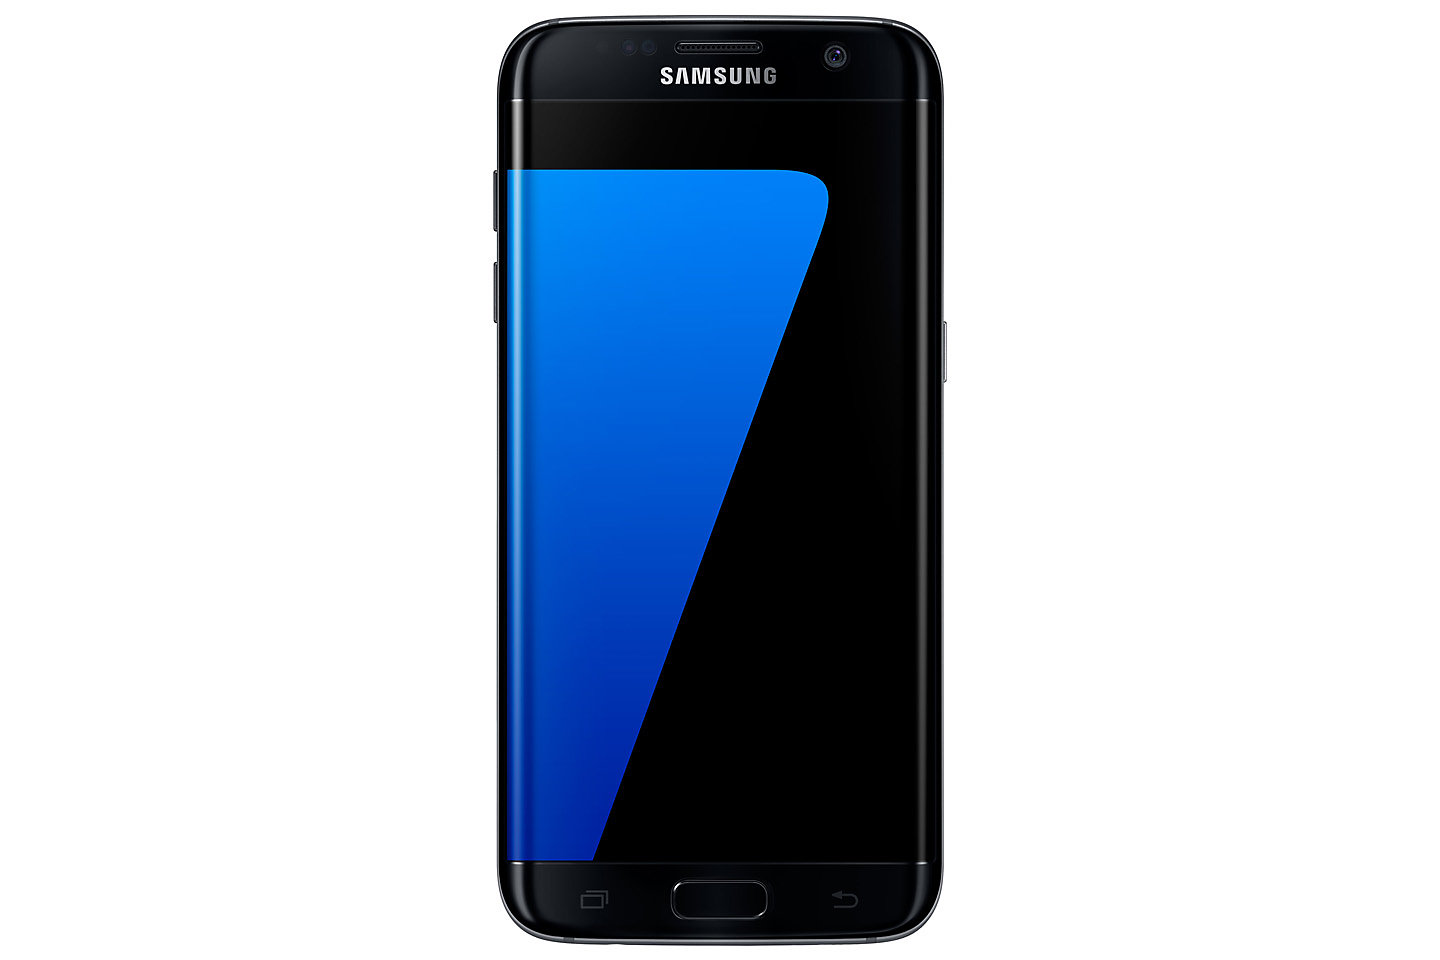 Samsung galaxy s7 edge 32gb price in pakistan buy samsung galaxy s7 - We Re Completely Changing How You Ll Share Experiences And Memories We Re Doing That By Shattering The Boundaries Of What A Phone Can Do